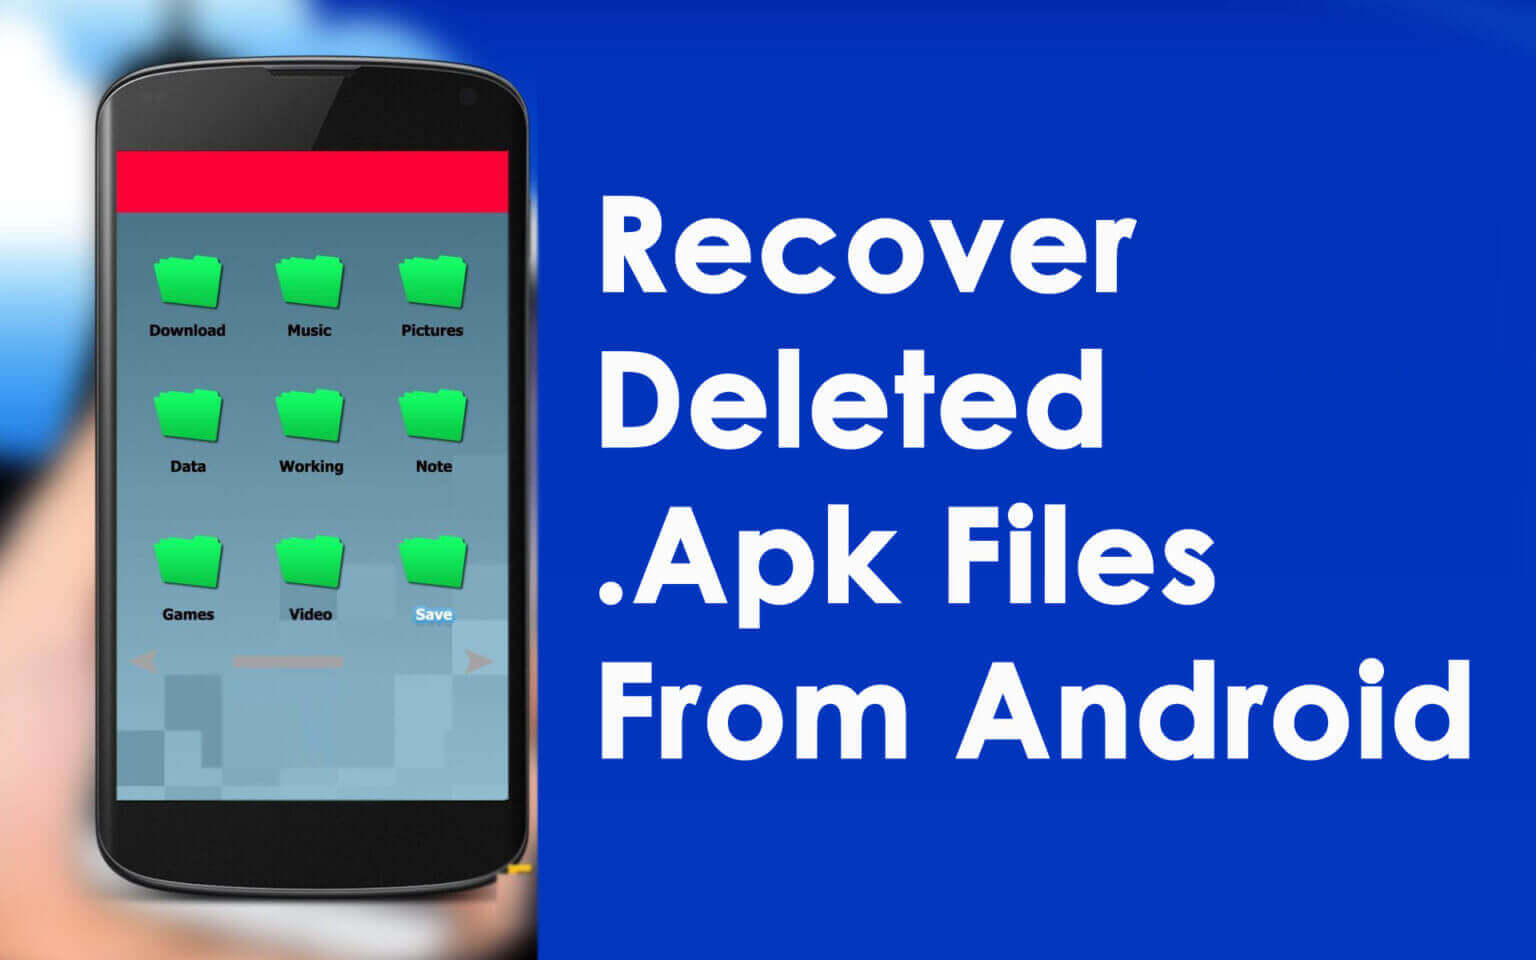 Recover Deleted Apk Files From Android